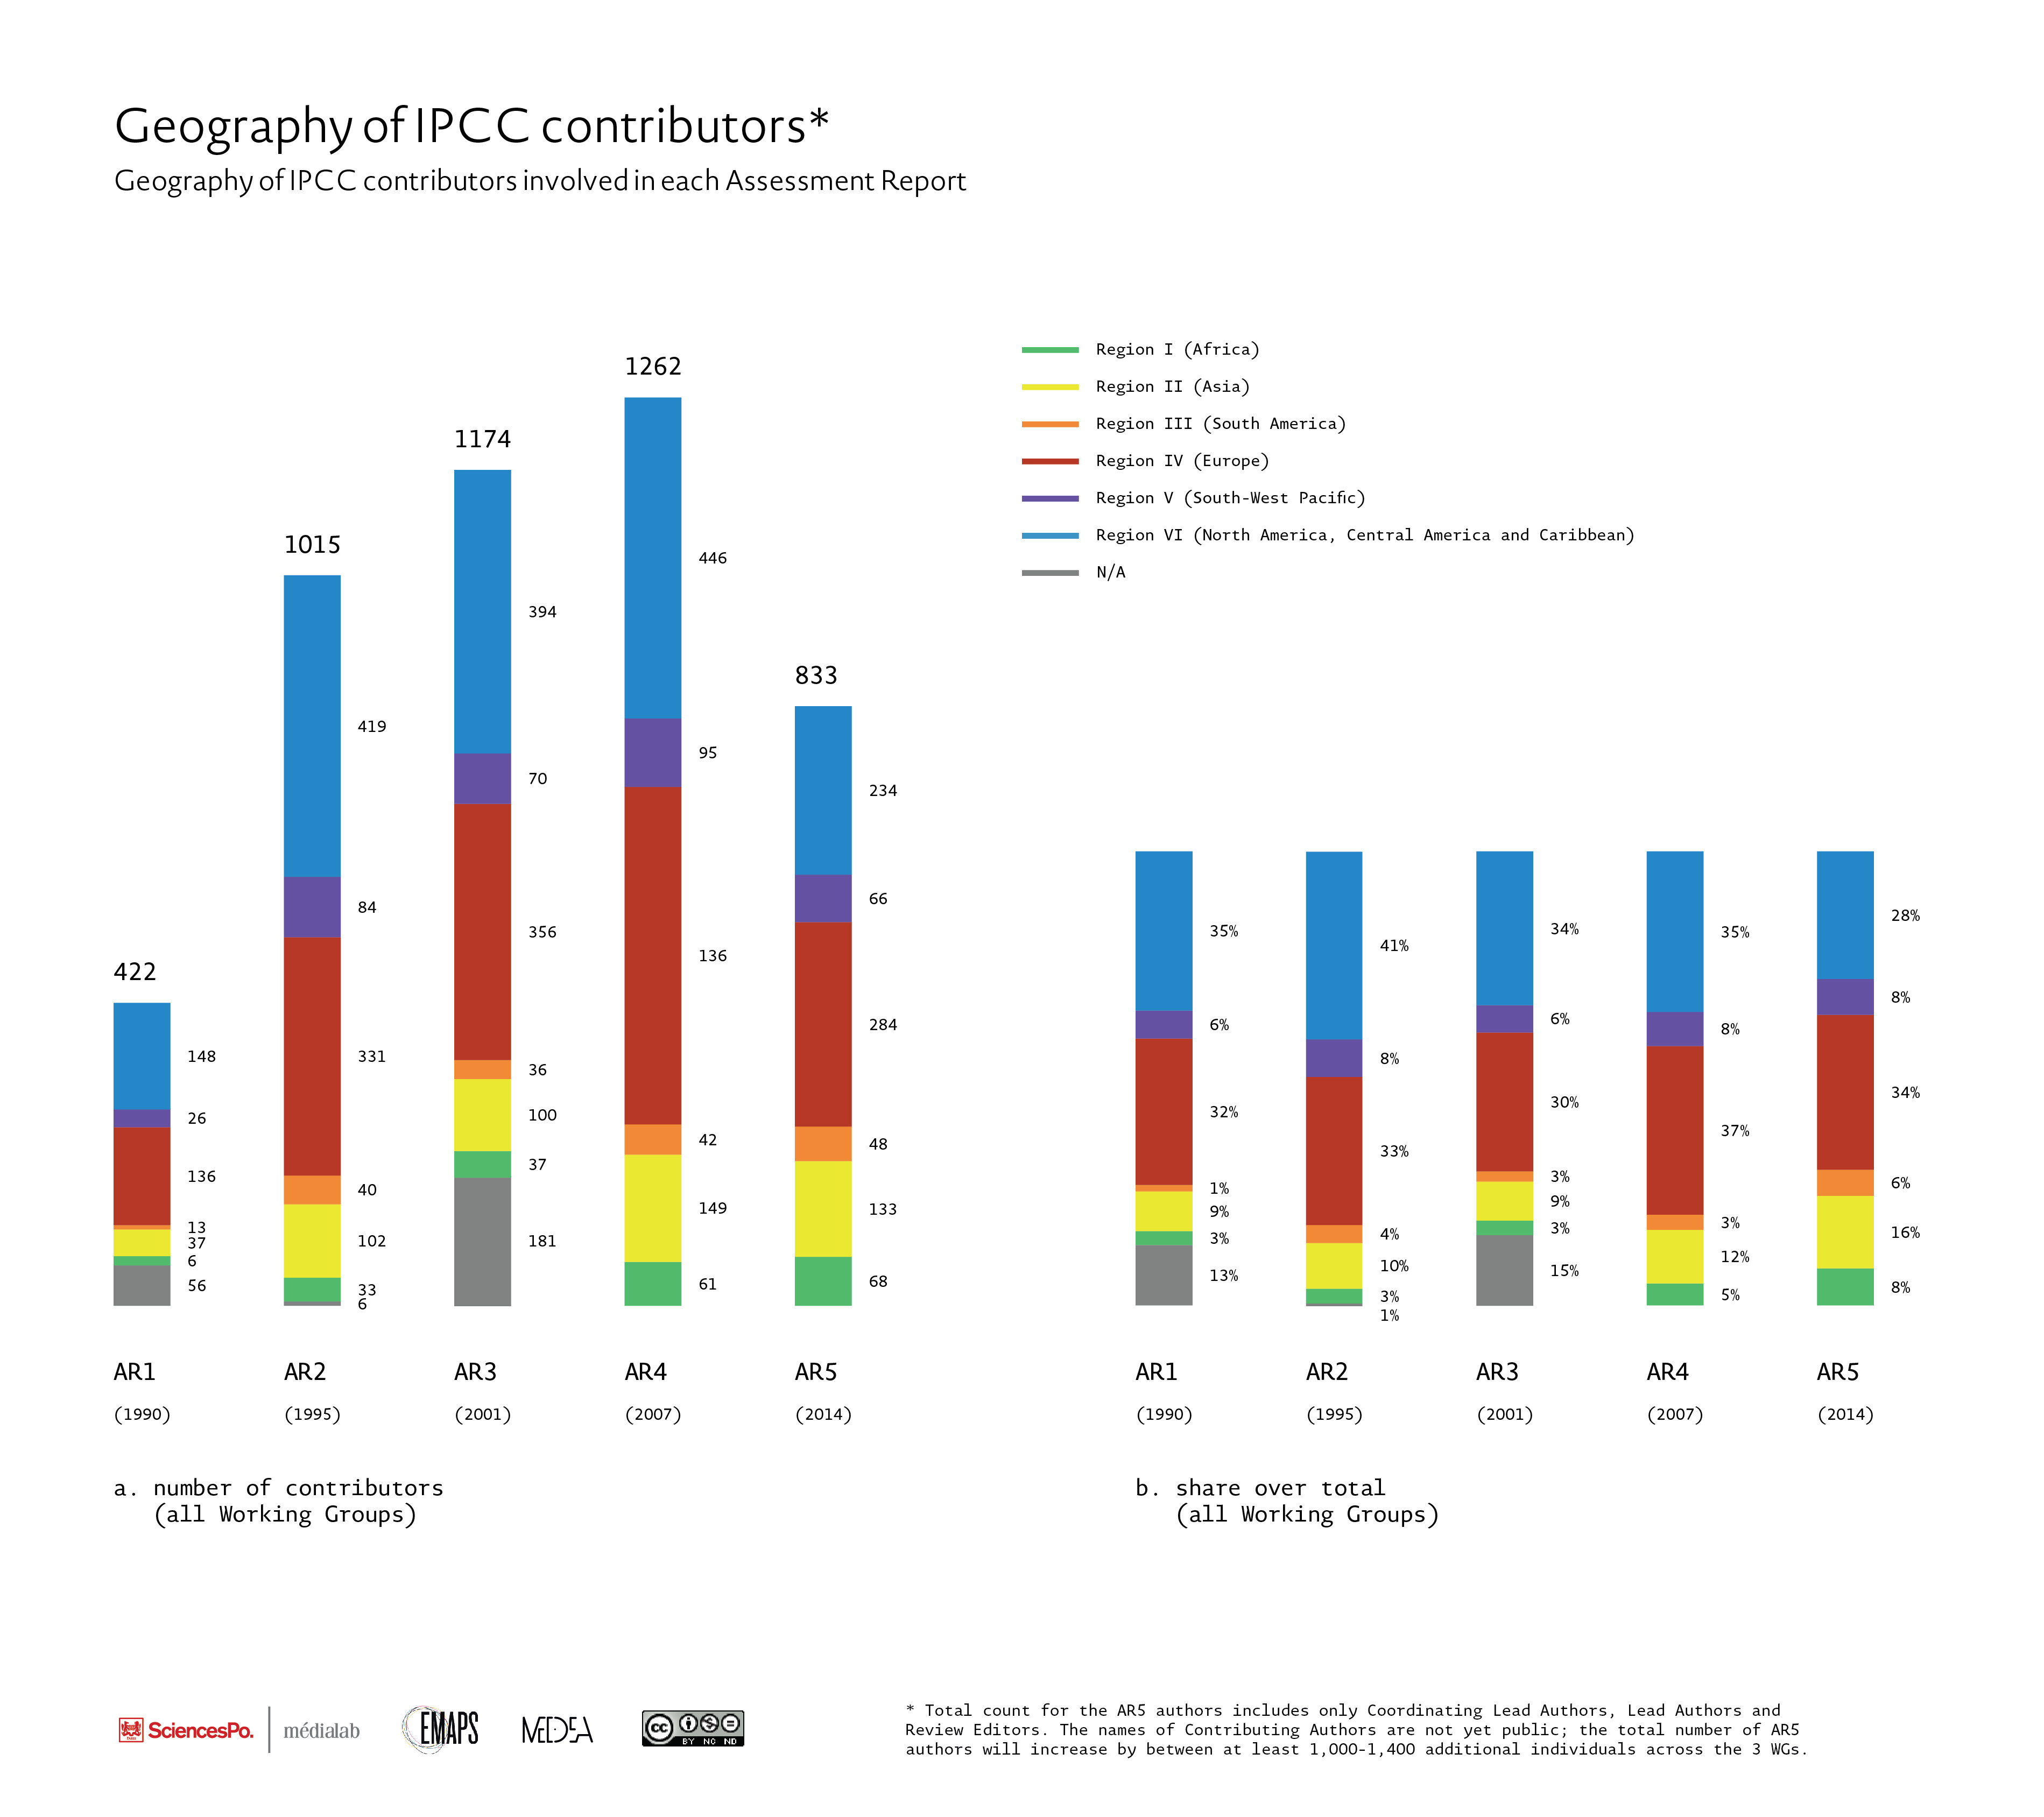 Fig. 2a. Geography of IPCC contributors